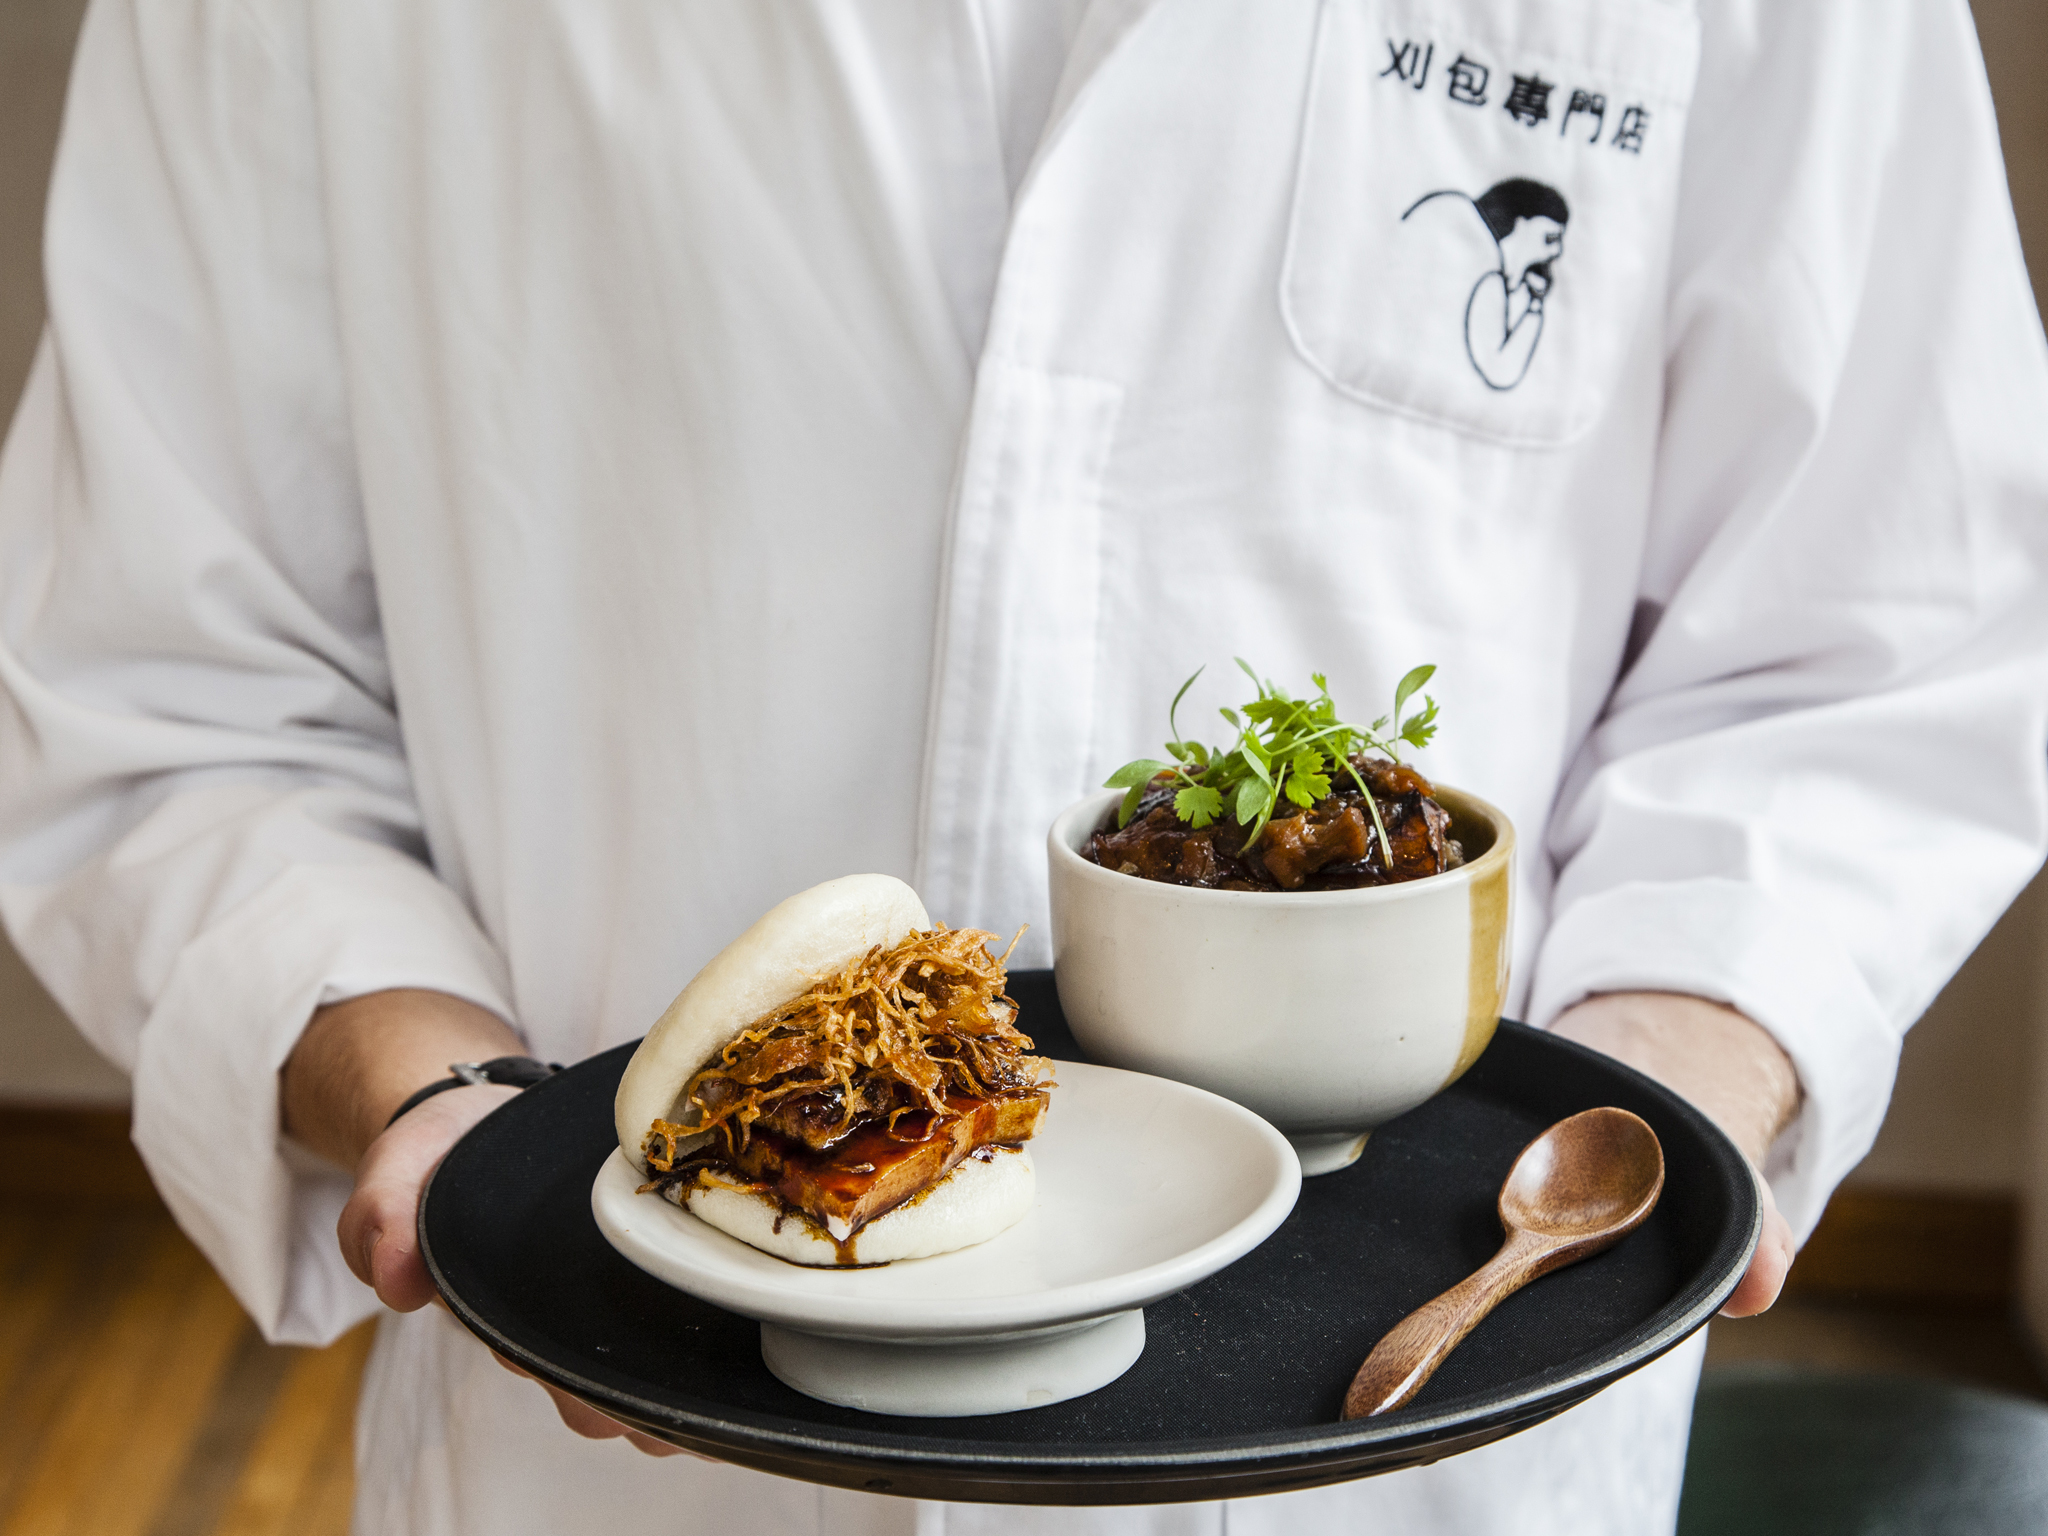 Bao's follow-up restaurant Xu is now taking bookings